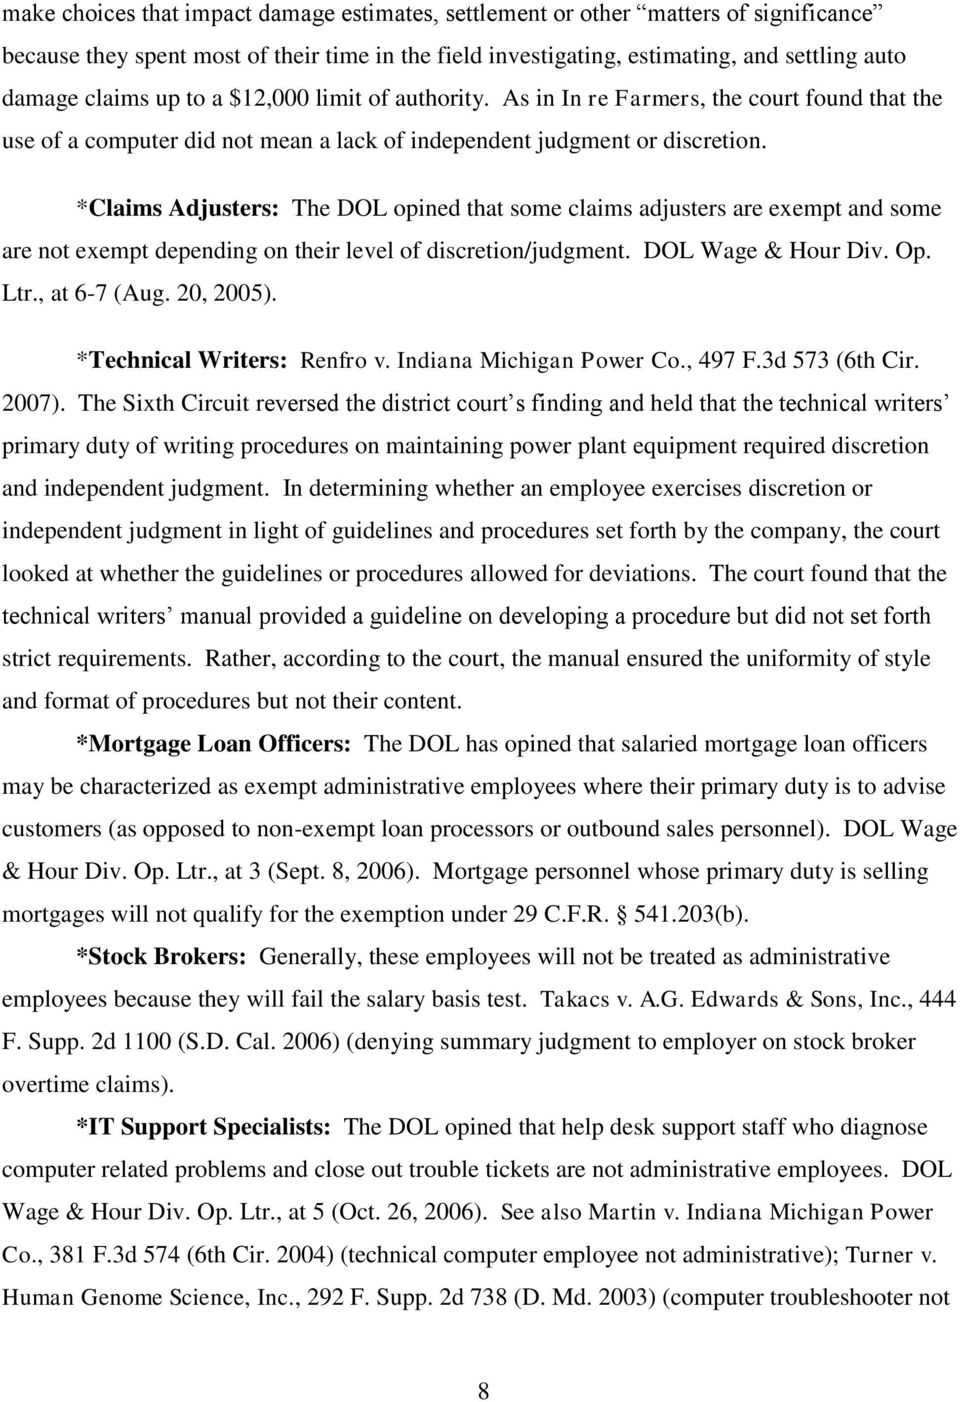 *Claims Adjusters: The DOL opined that some claims adjusters are exempt and some are not exempt depending on their level of discretion/judgment. DOL Wage & Hour Div. Op. Ltr., at 6-7 (Aug. 20, 2005).